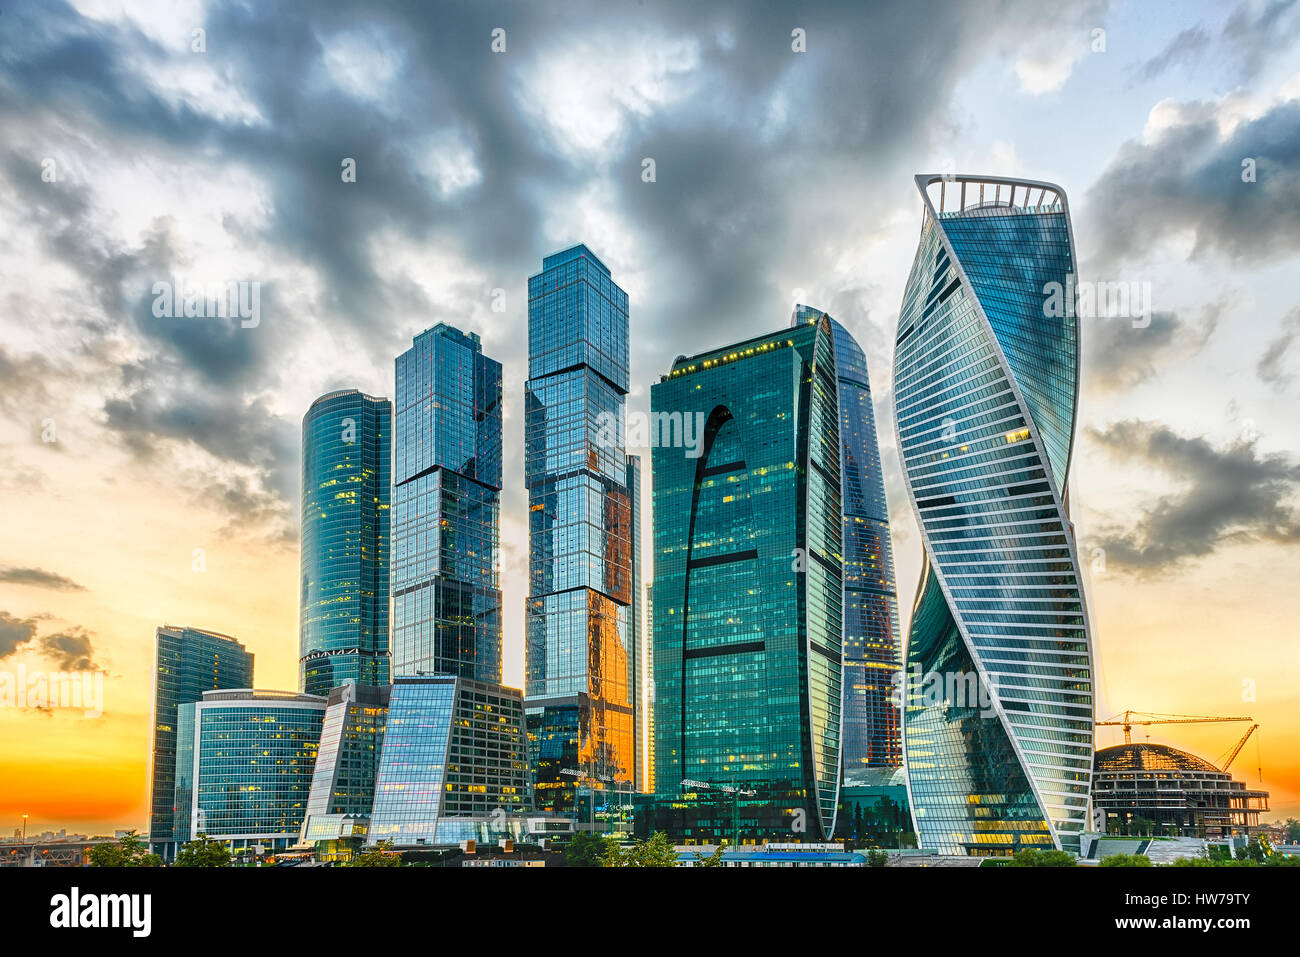 Scenic view with skyscrapers of the Moscow City International Business Center, Moscow Skyline, Russia Stock Photo